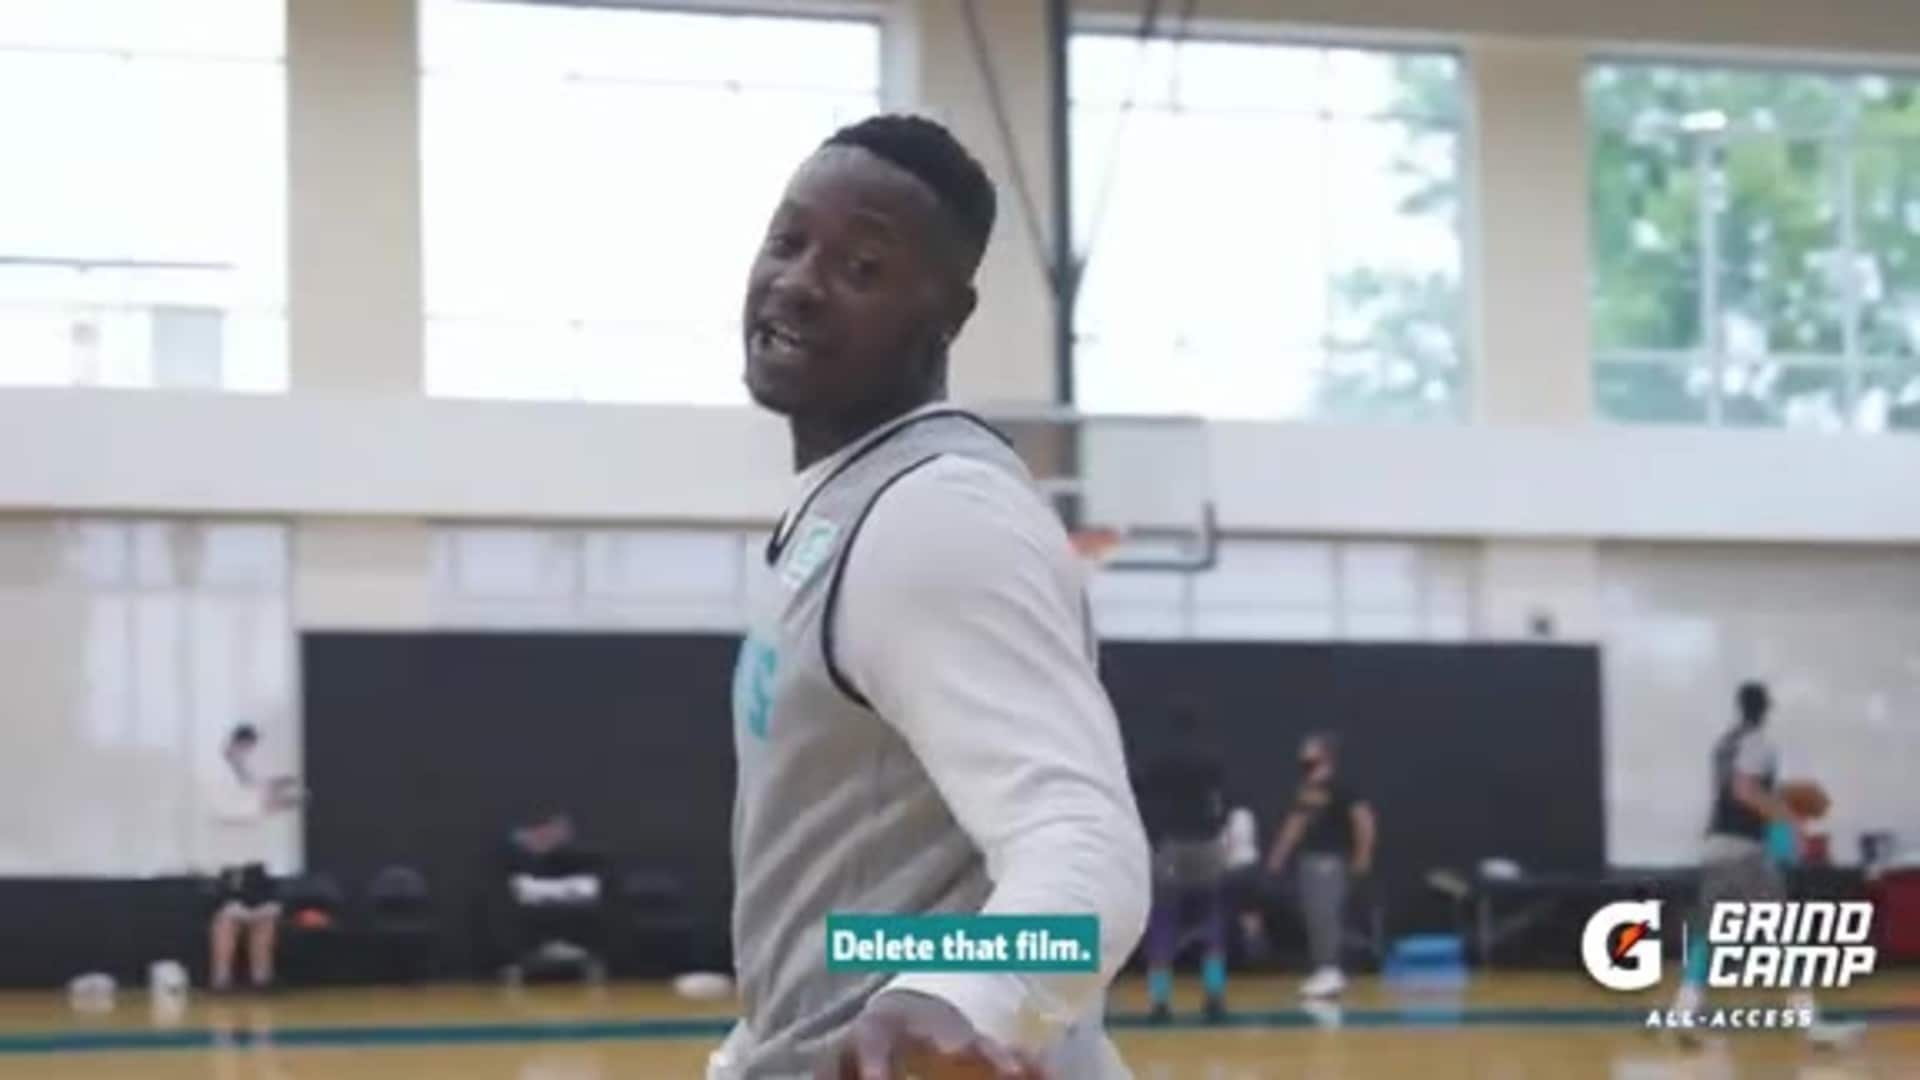 Terry Rozier Mic'd Up at Gatorade Grind Camp